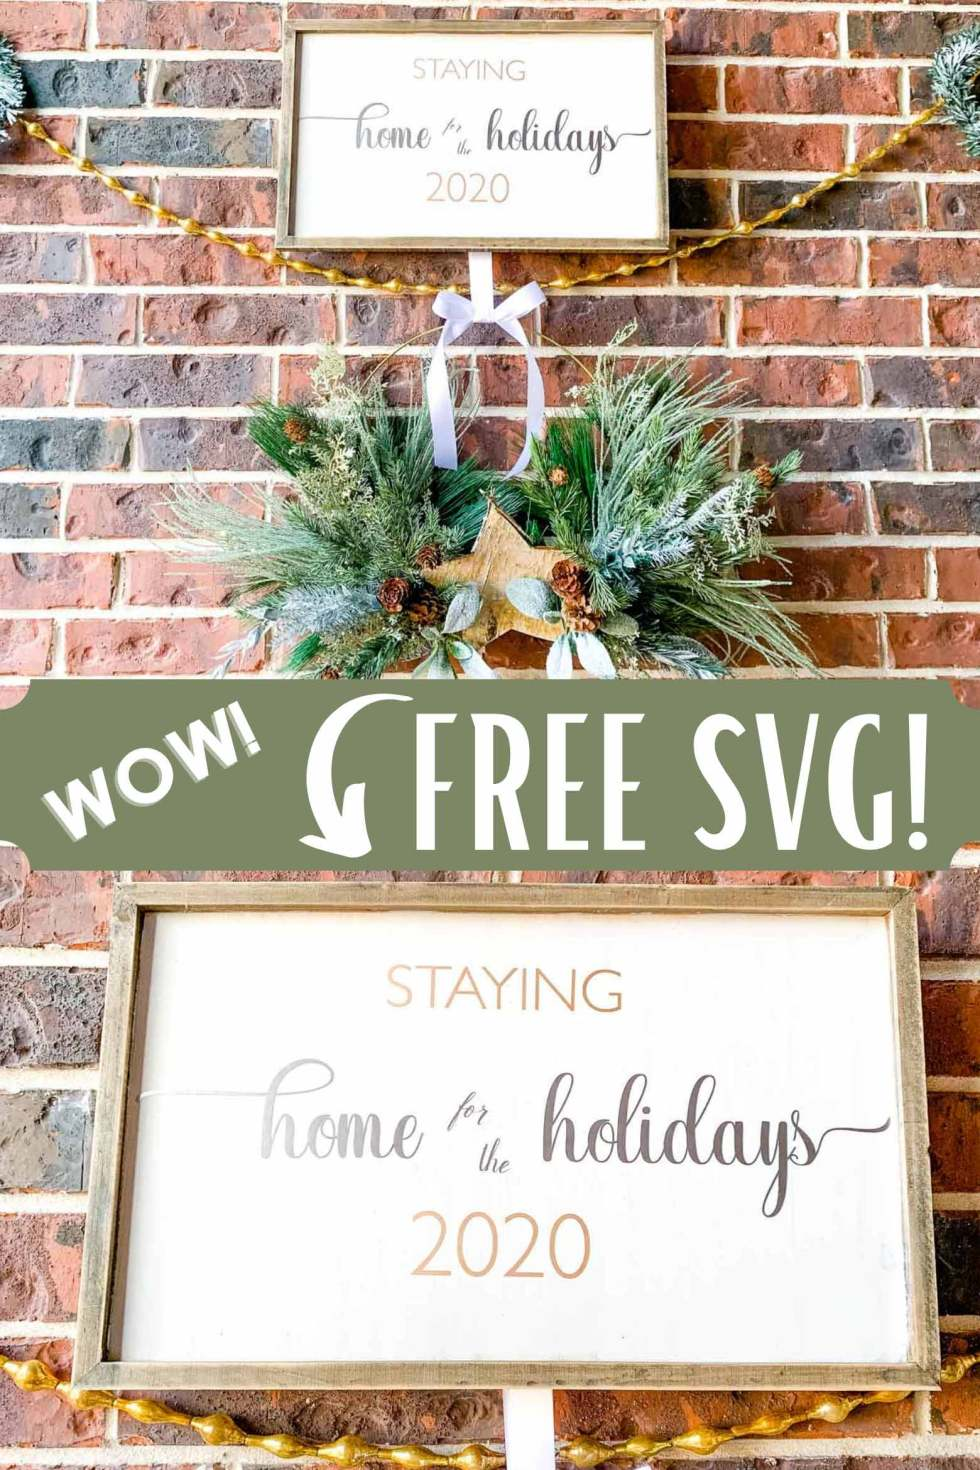 staying home for the holidays sign above gold garland and a greenery wreath